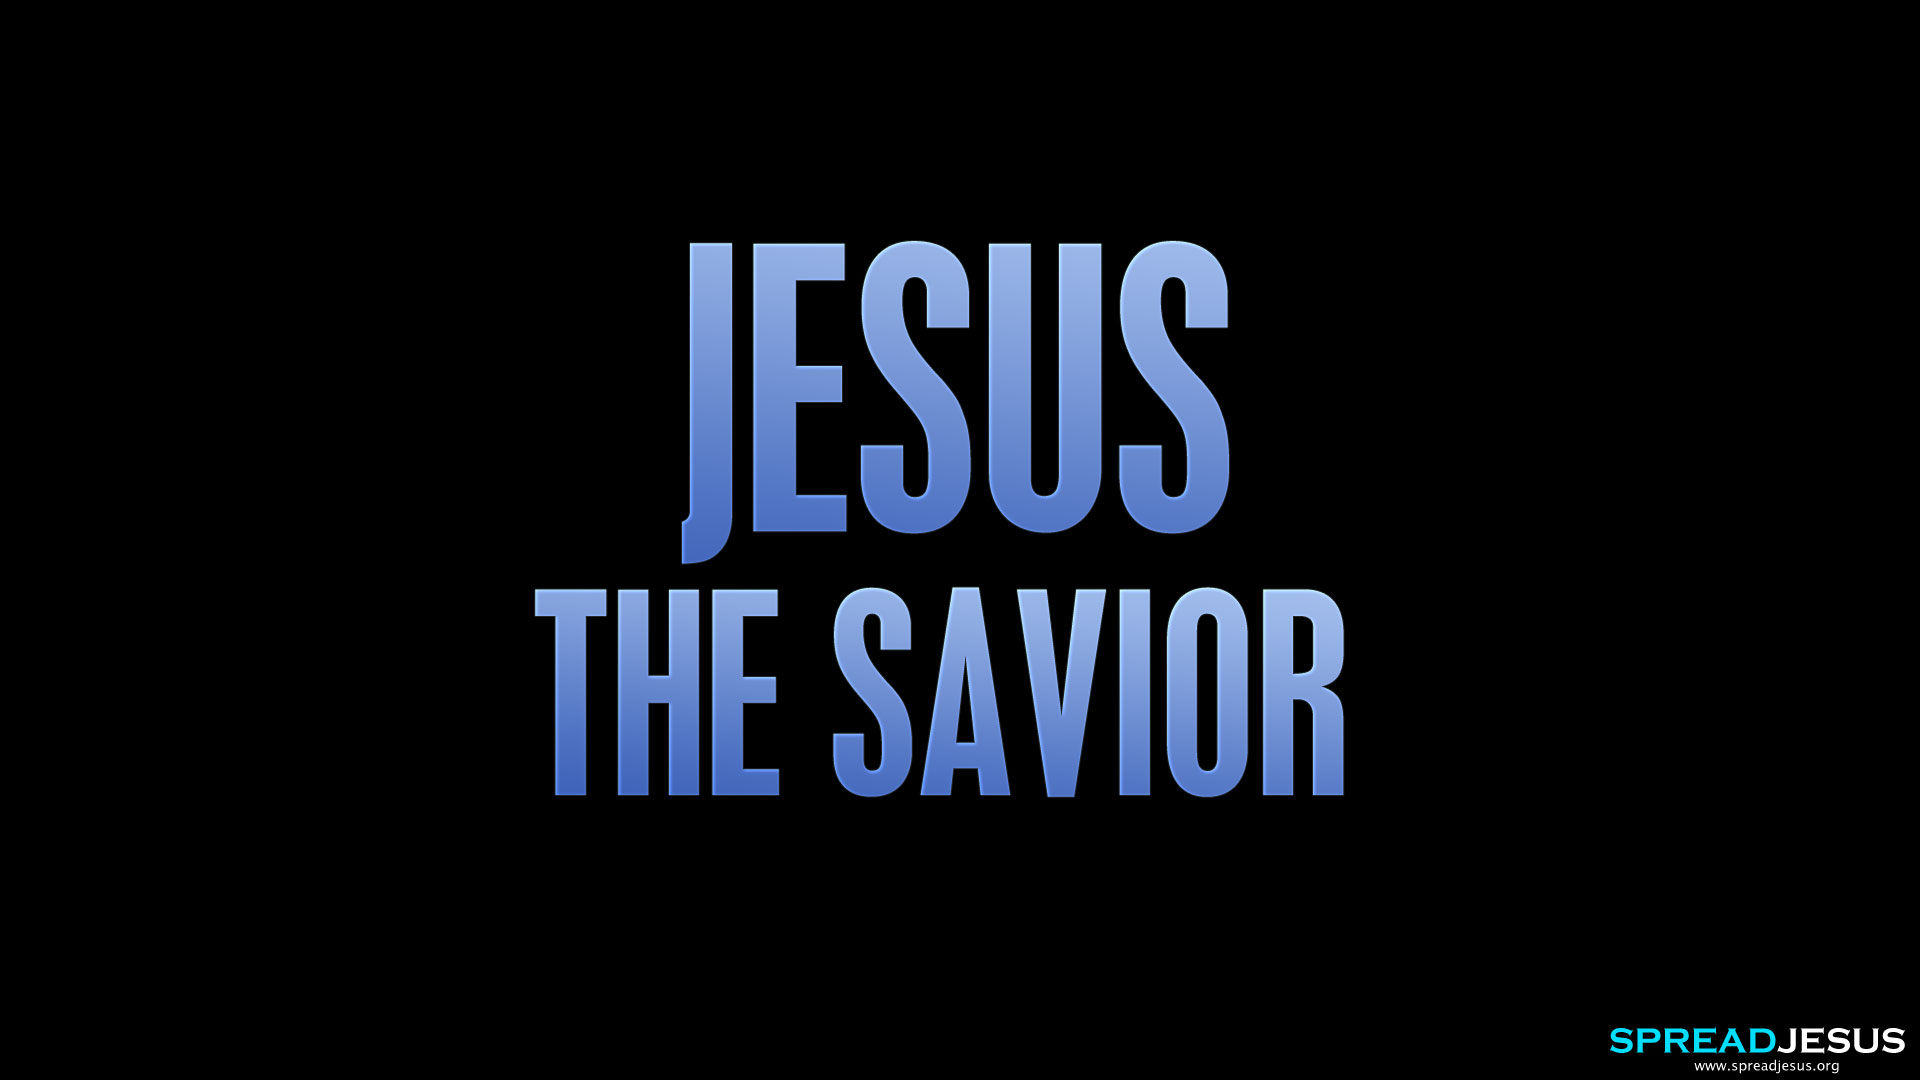 Jesus Christ HD wallpapers free download:Jesus The Savior Jesus Christ HD wallpaper 8 free download:Jesus christ Backgrounds ,christian backgrounds wallpapers HD